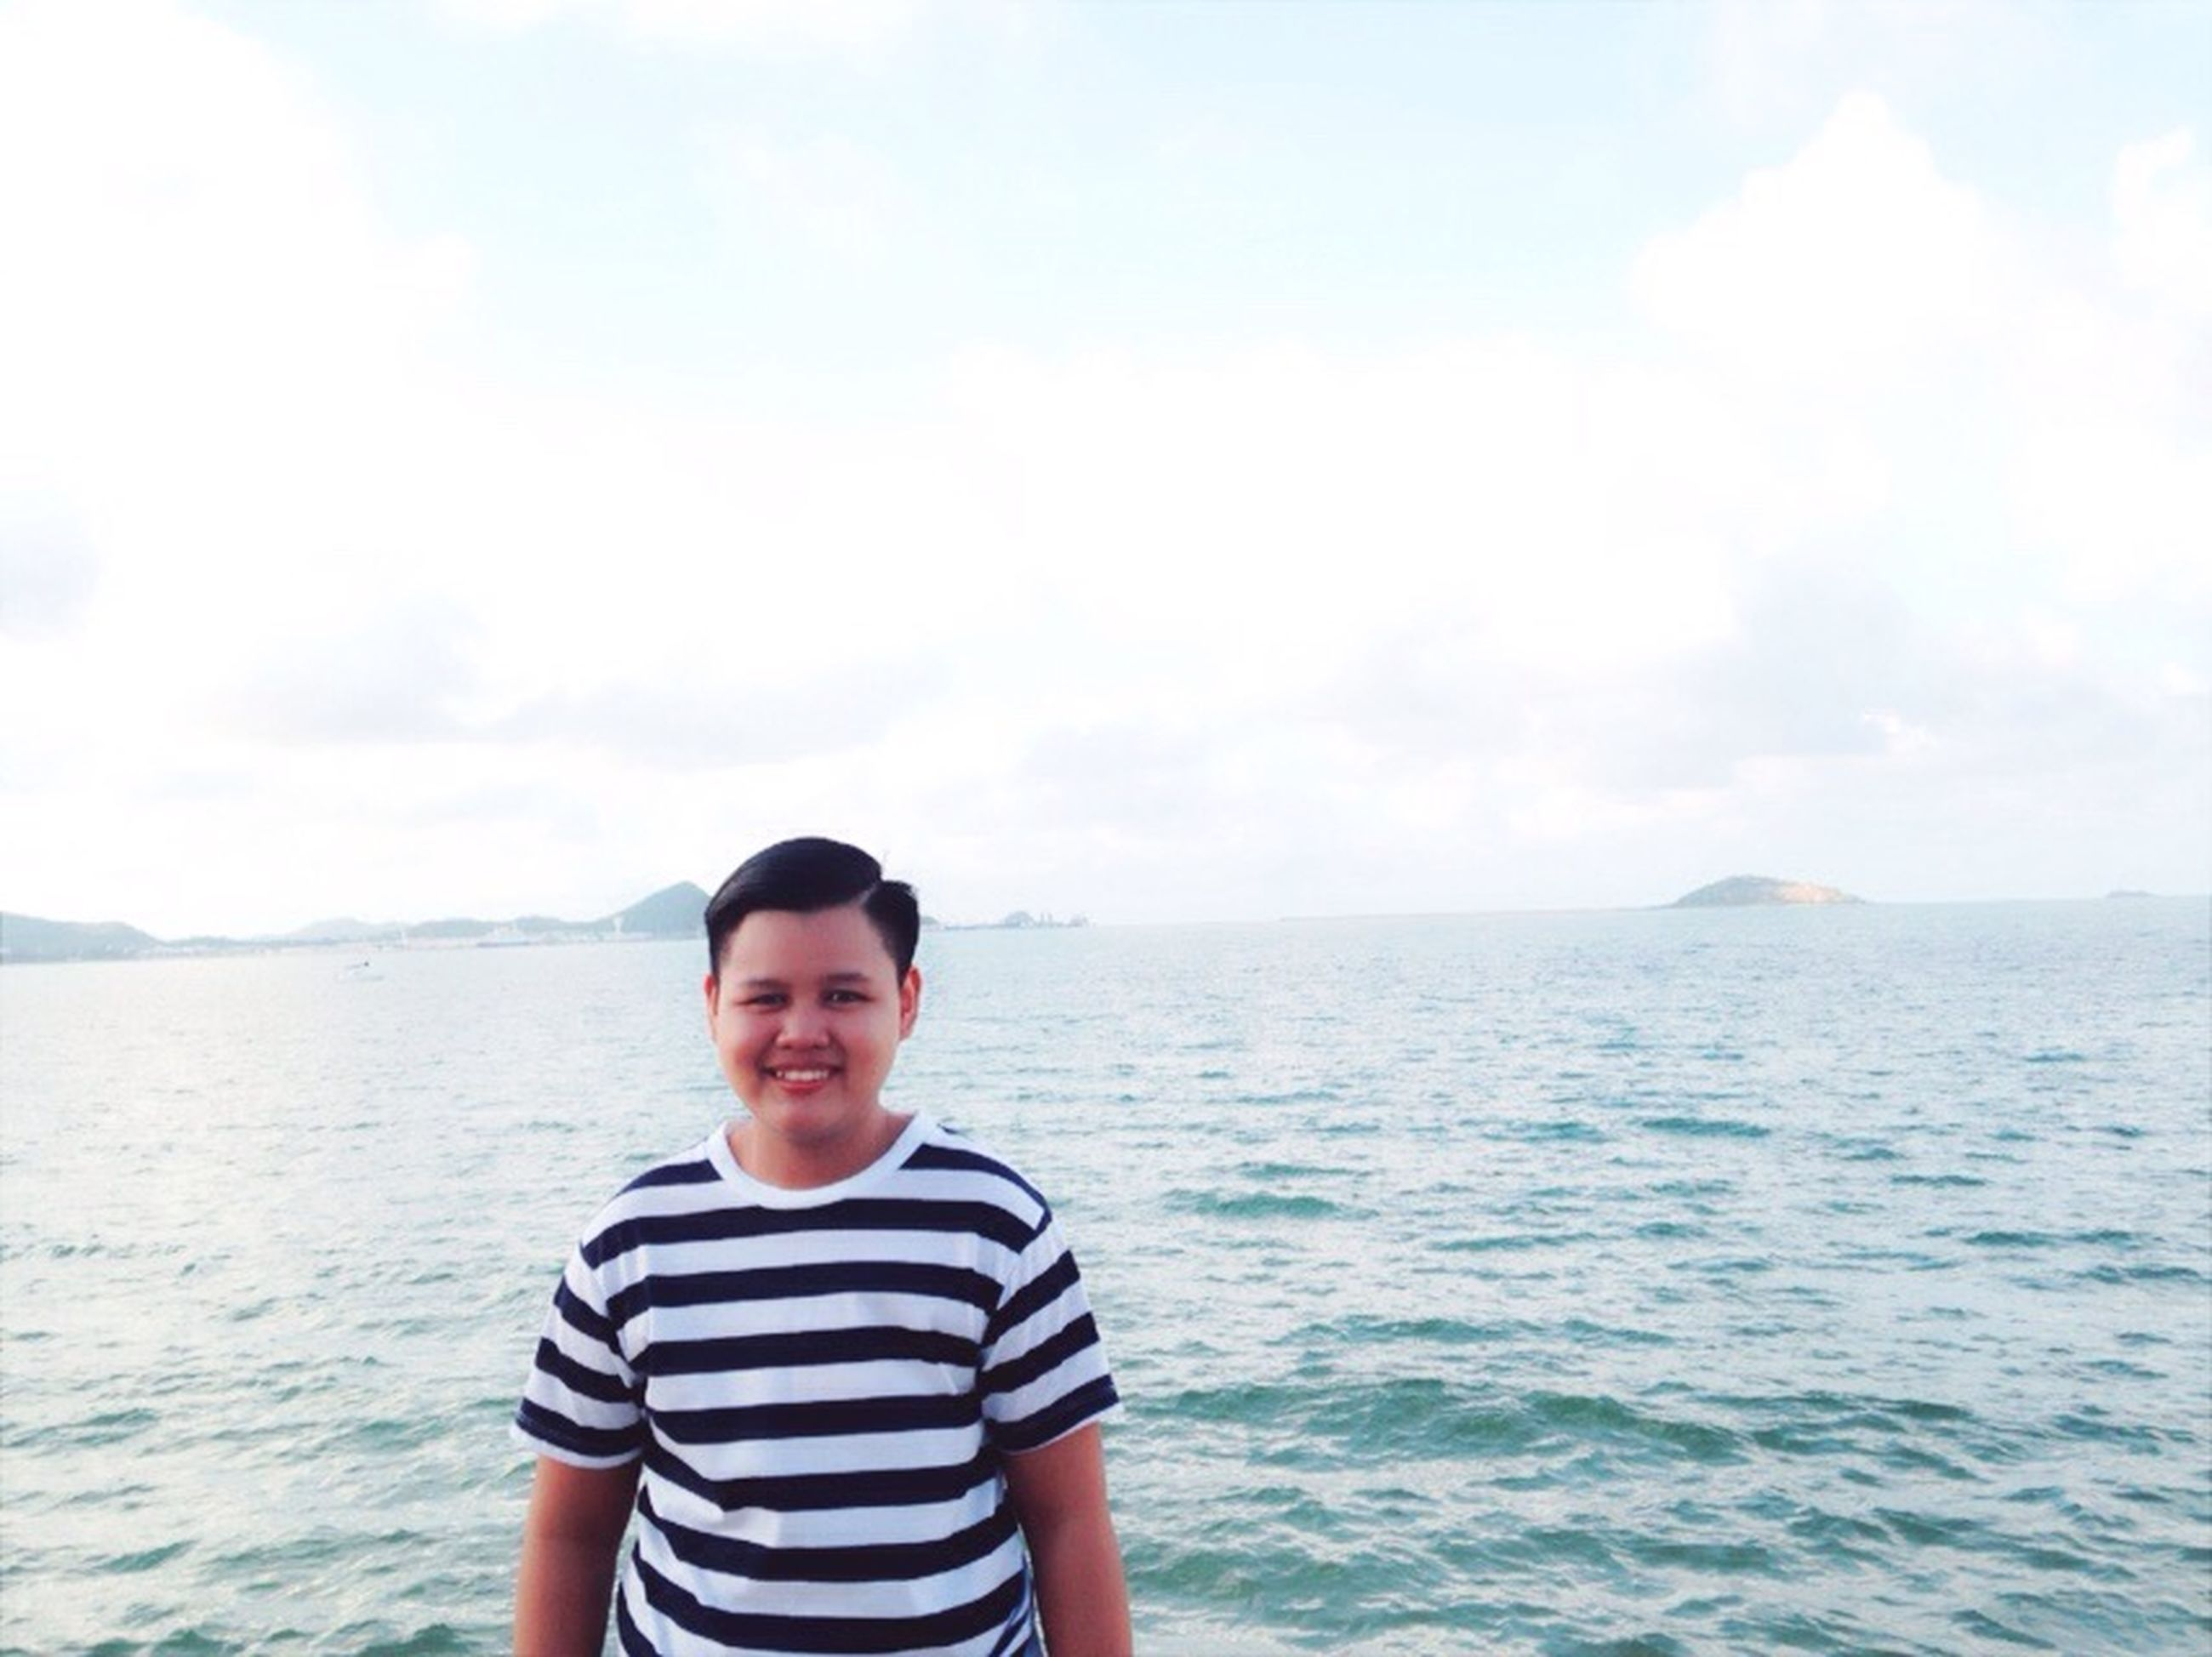 water, person, lifestyles, sea, leisure activity, sky, looking at camera, standing, waist up, portrait, casual clothing, young adult, young men, three quarter length, smiling, front view, nature, headshot